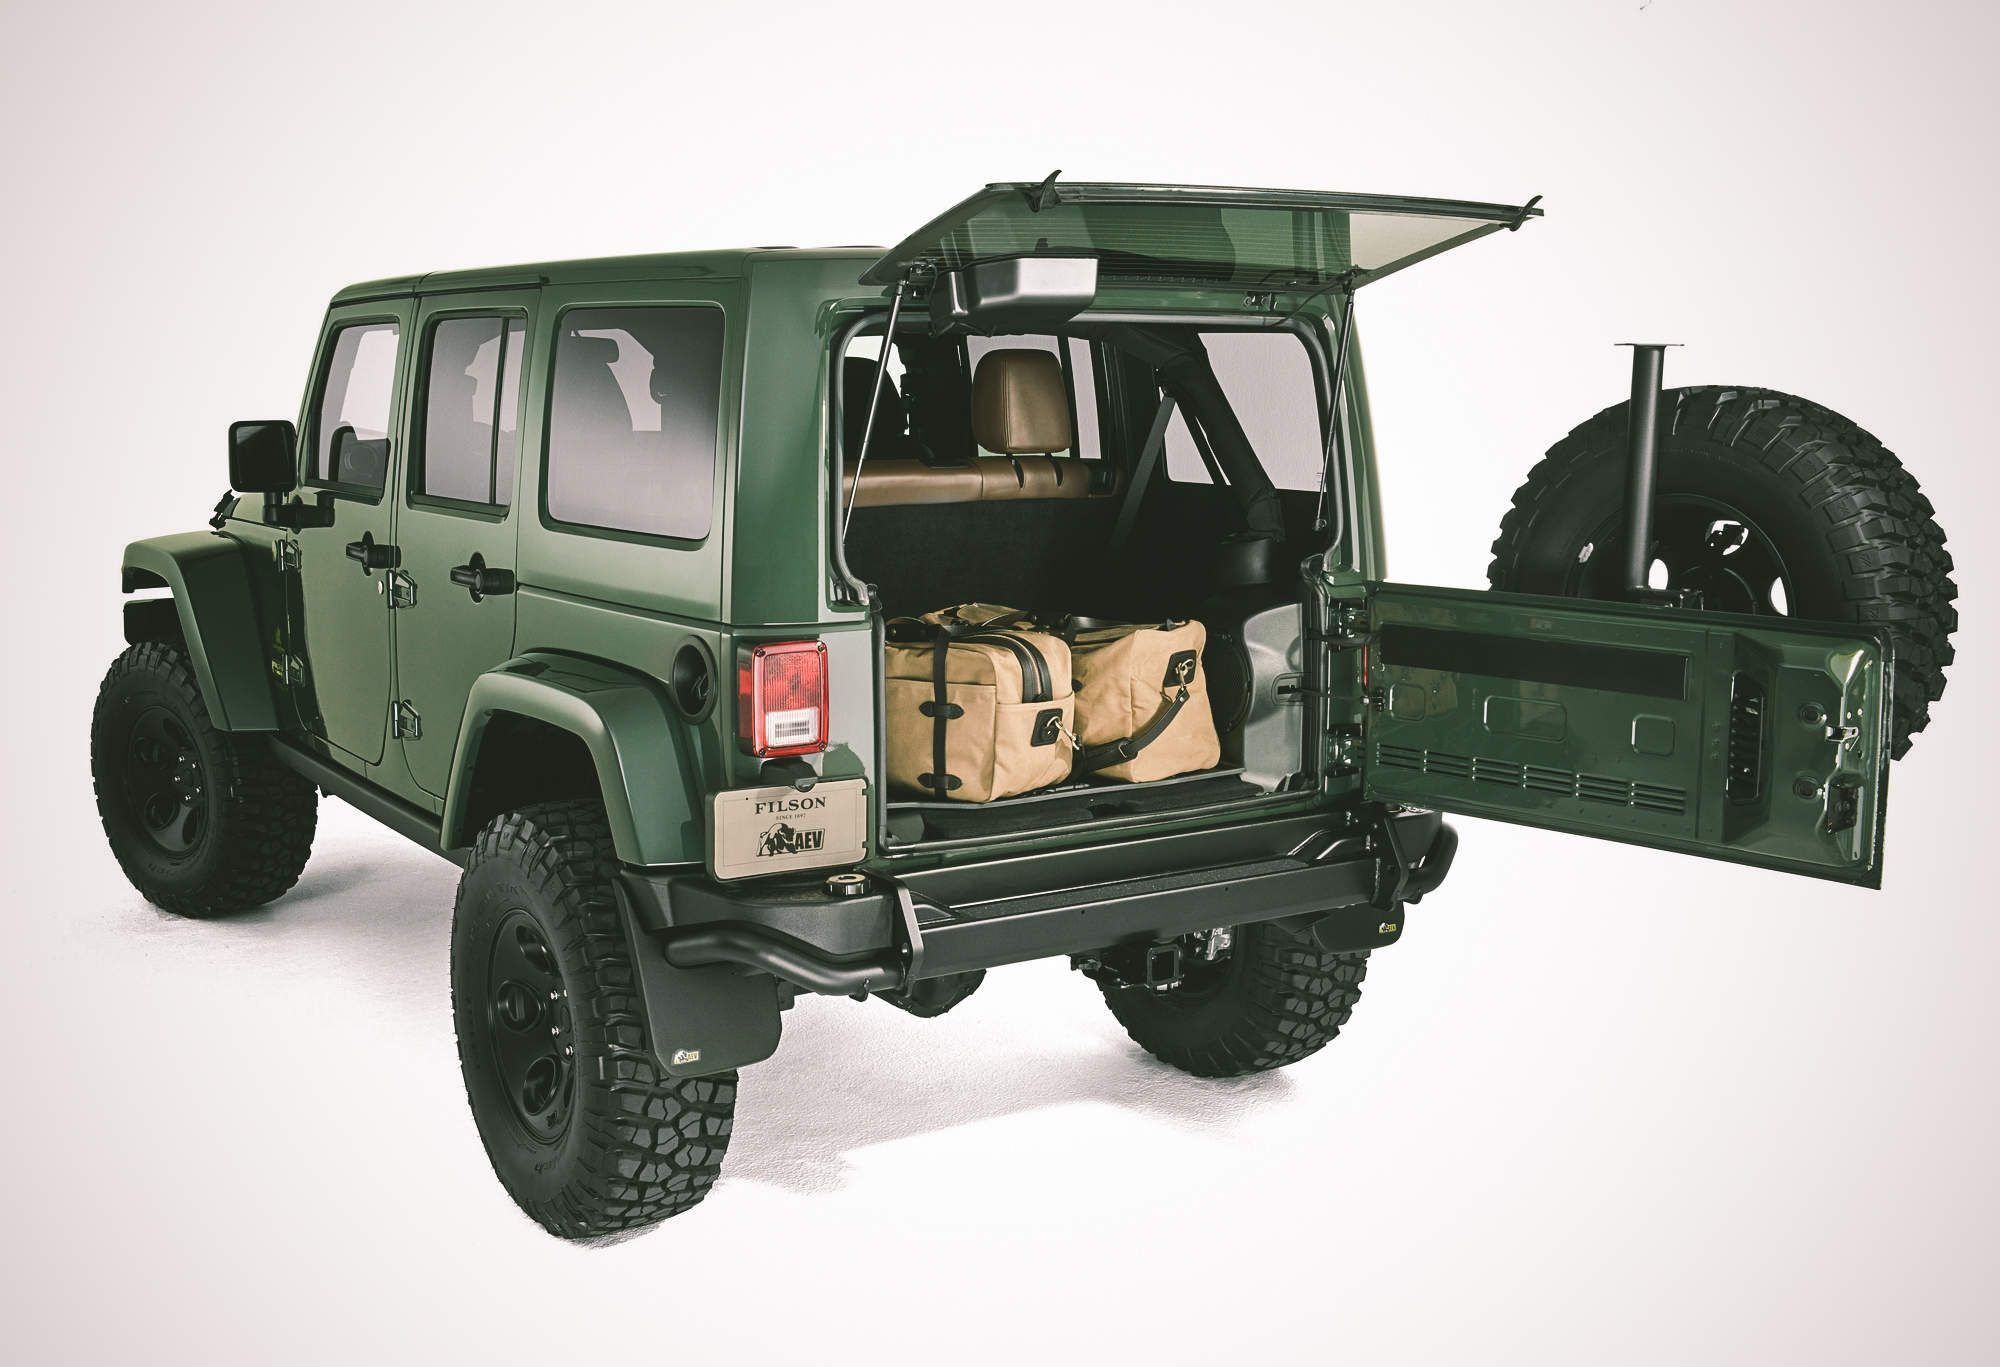 Filson S Limited Edition Jeep Is One Handsome Beast Jeep